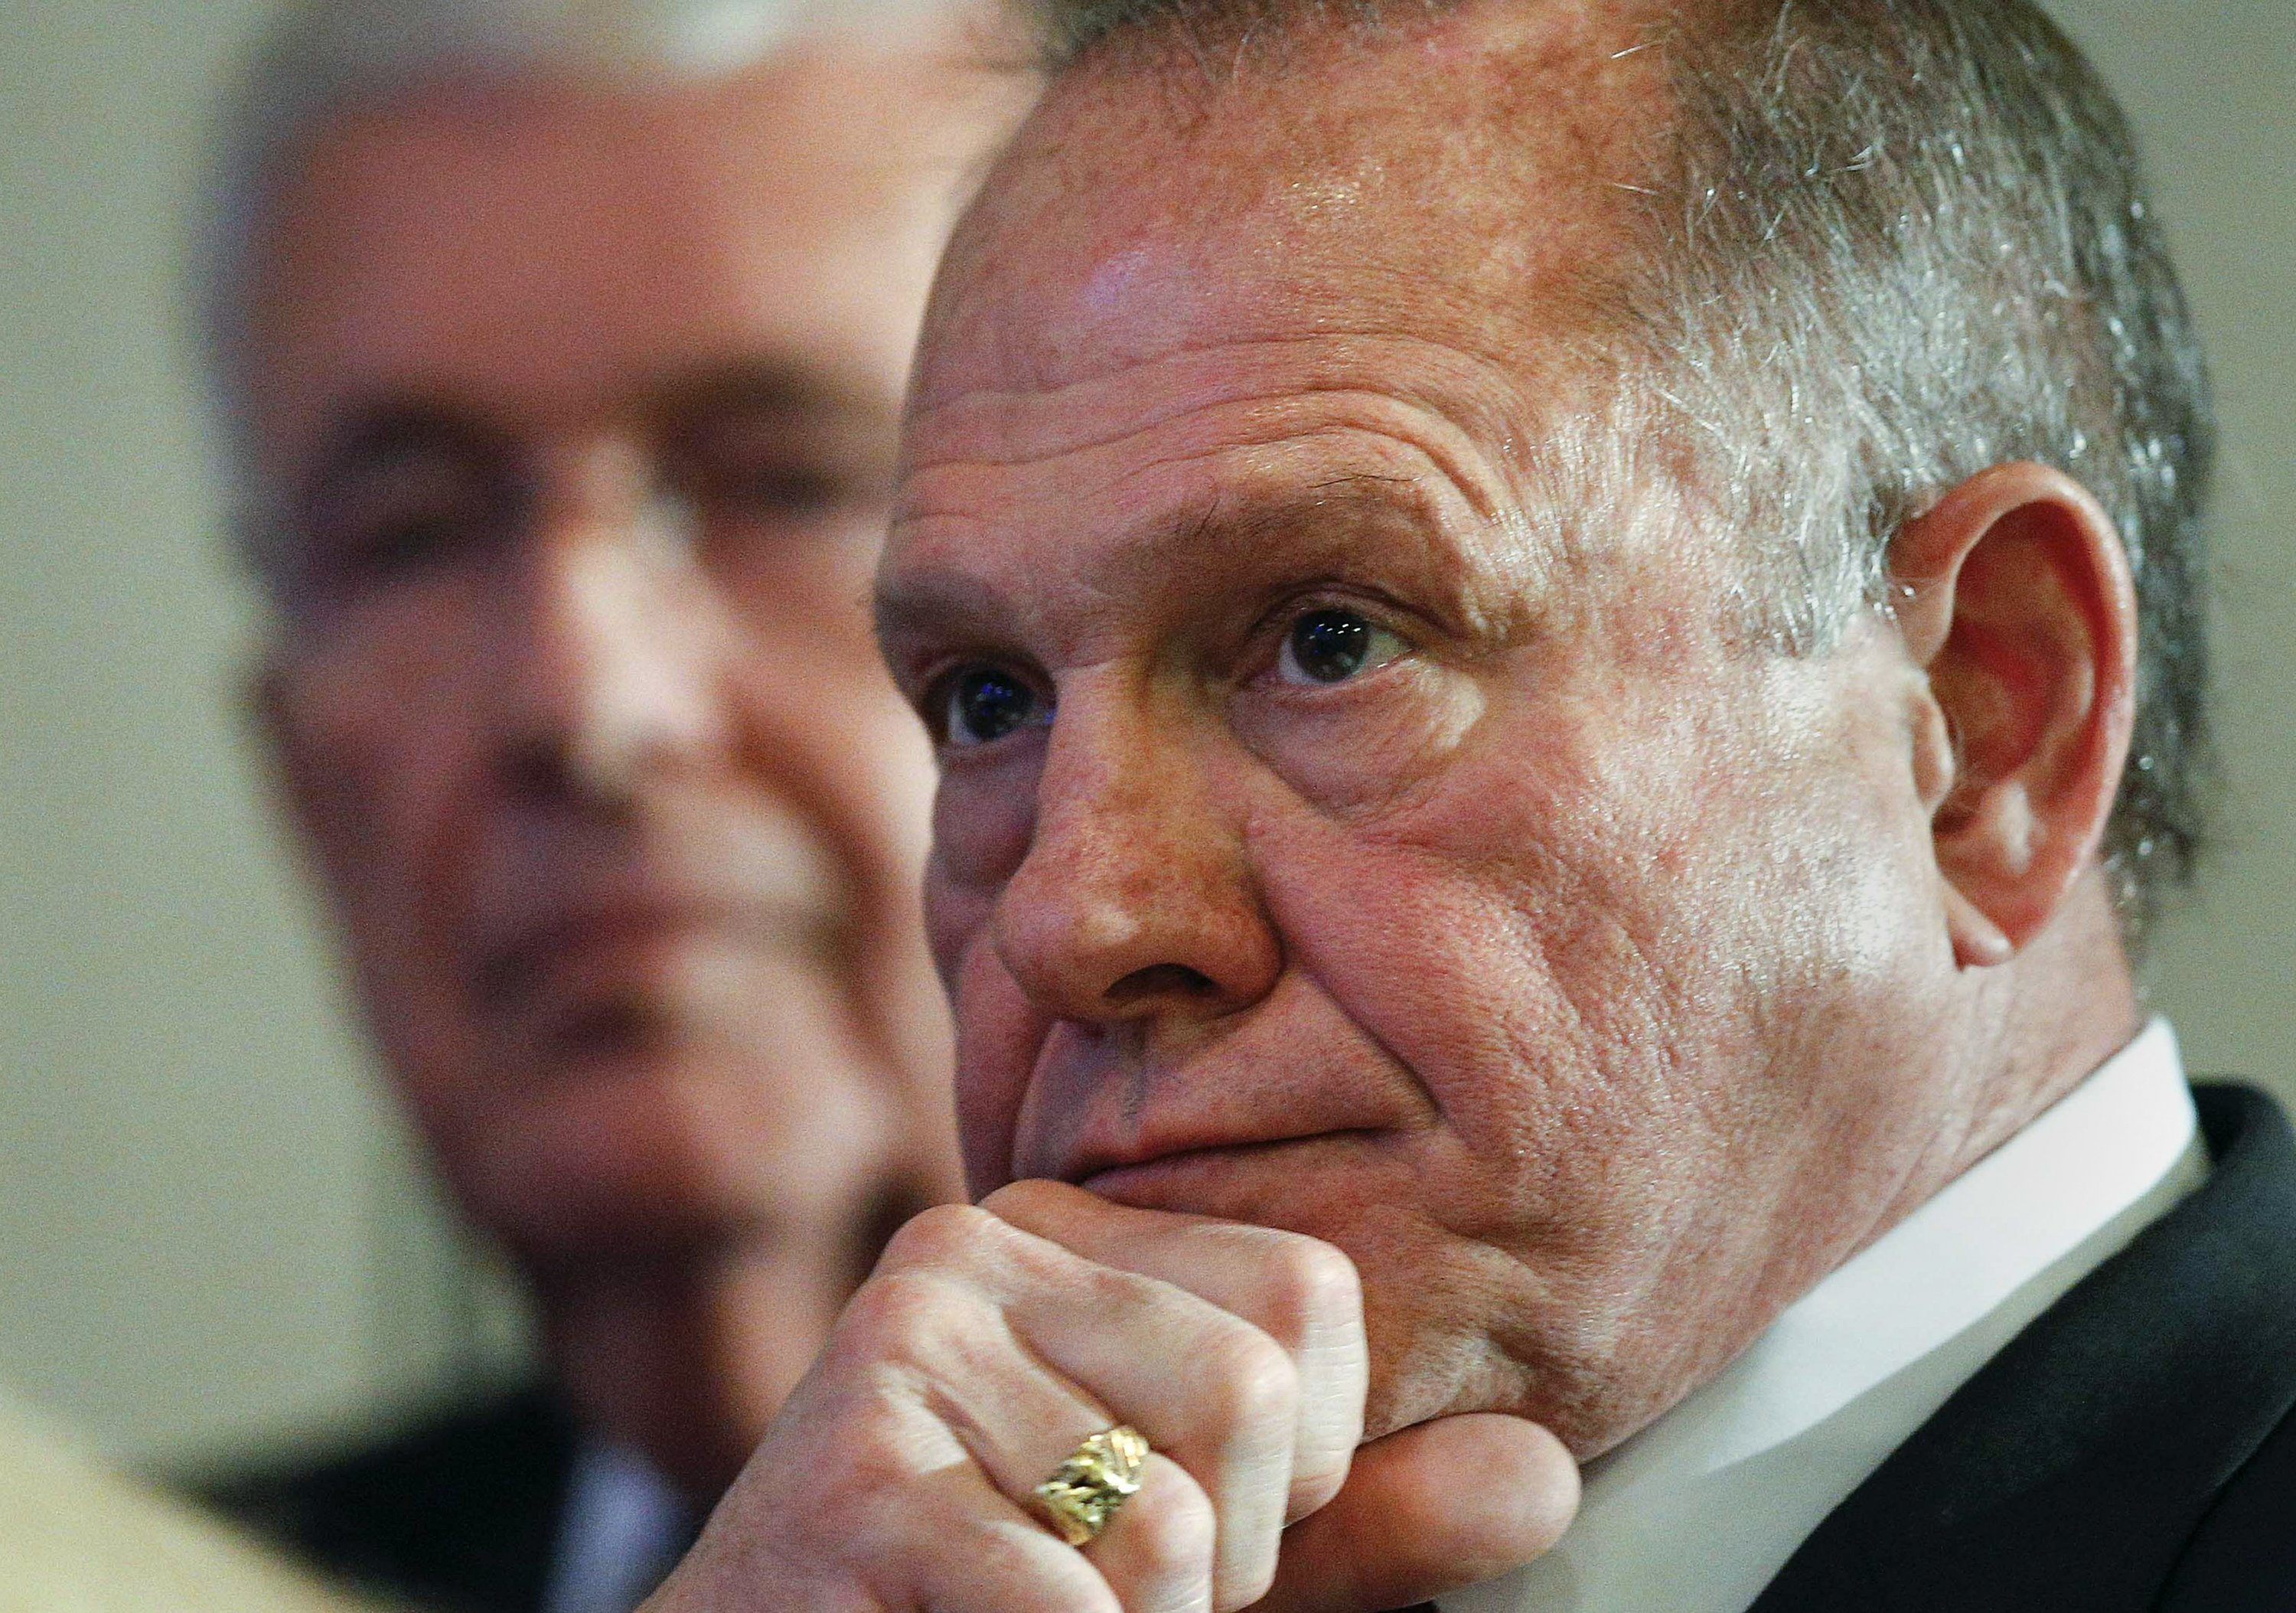 Moore targets female accusers as critics decry intimidation